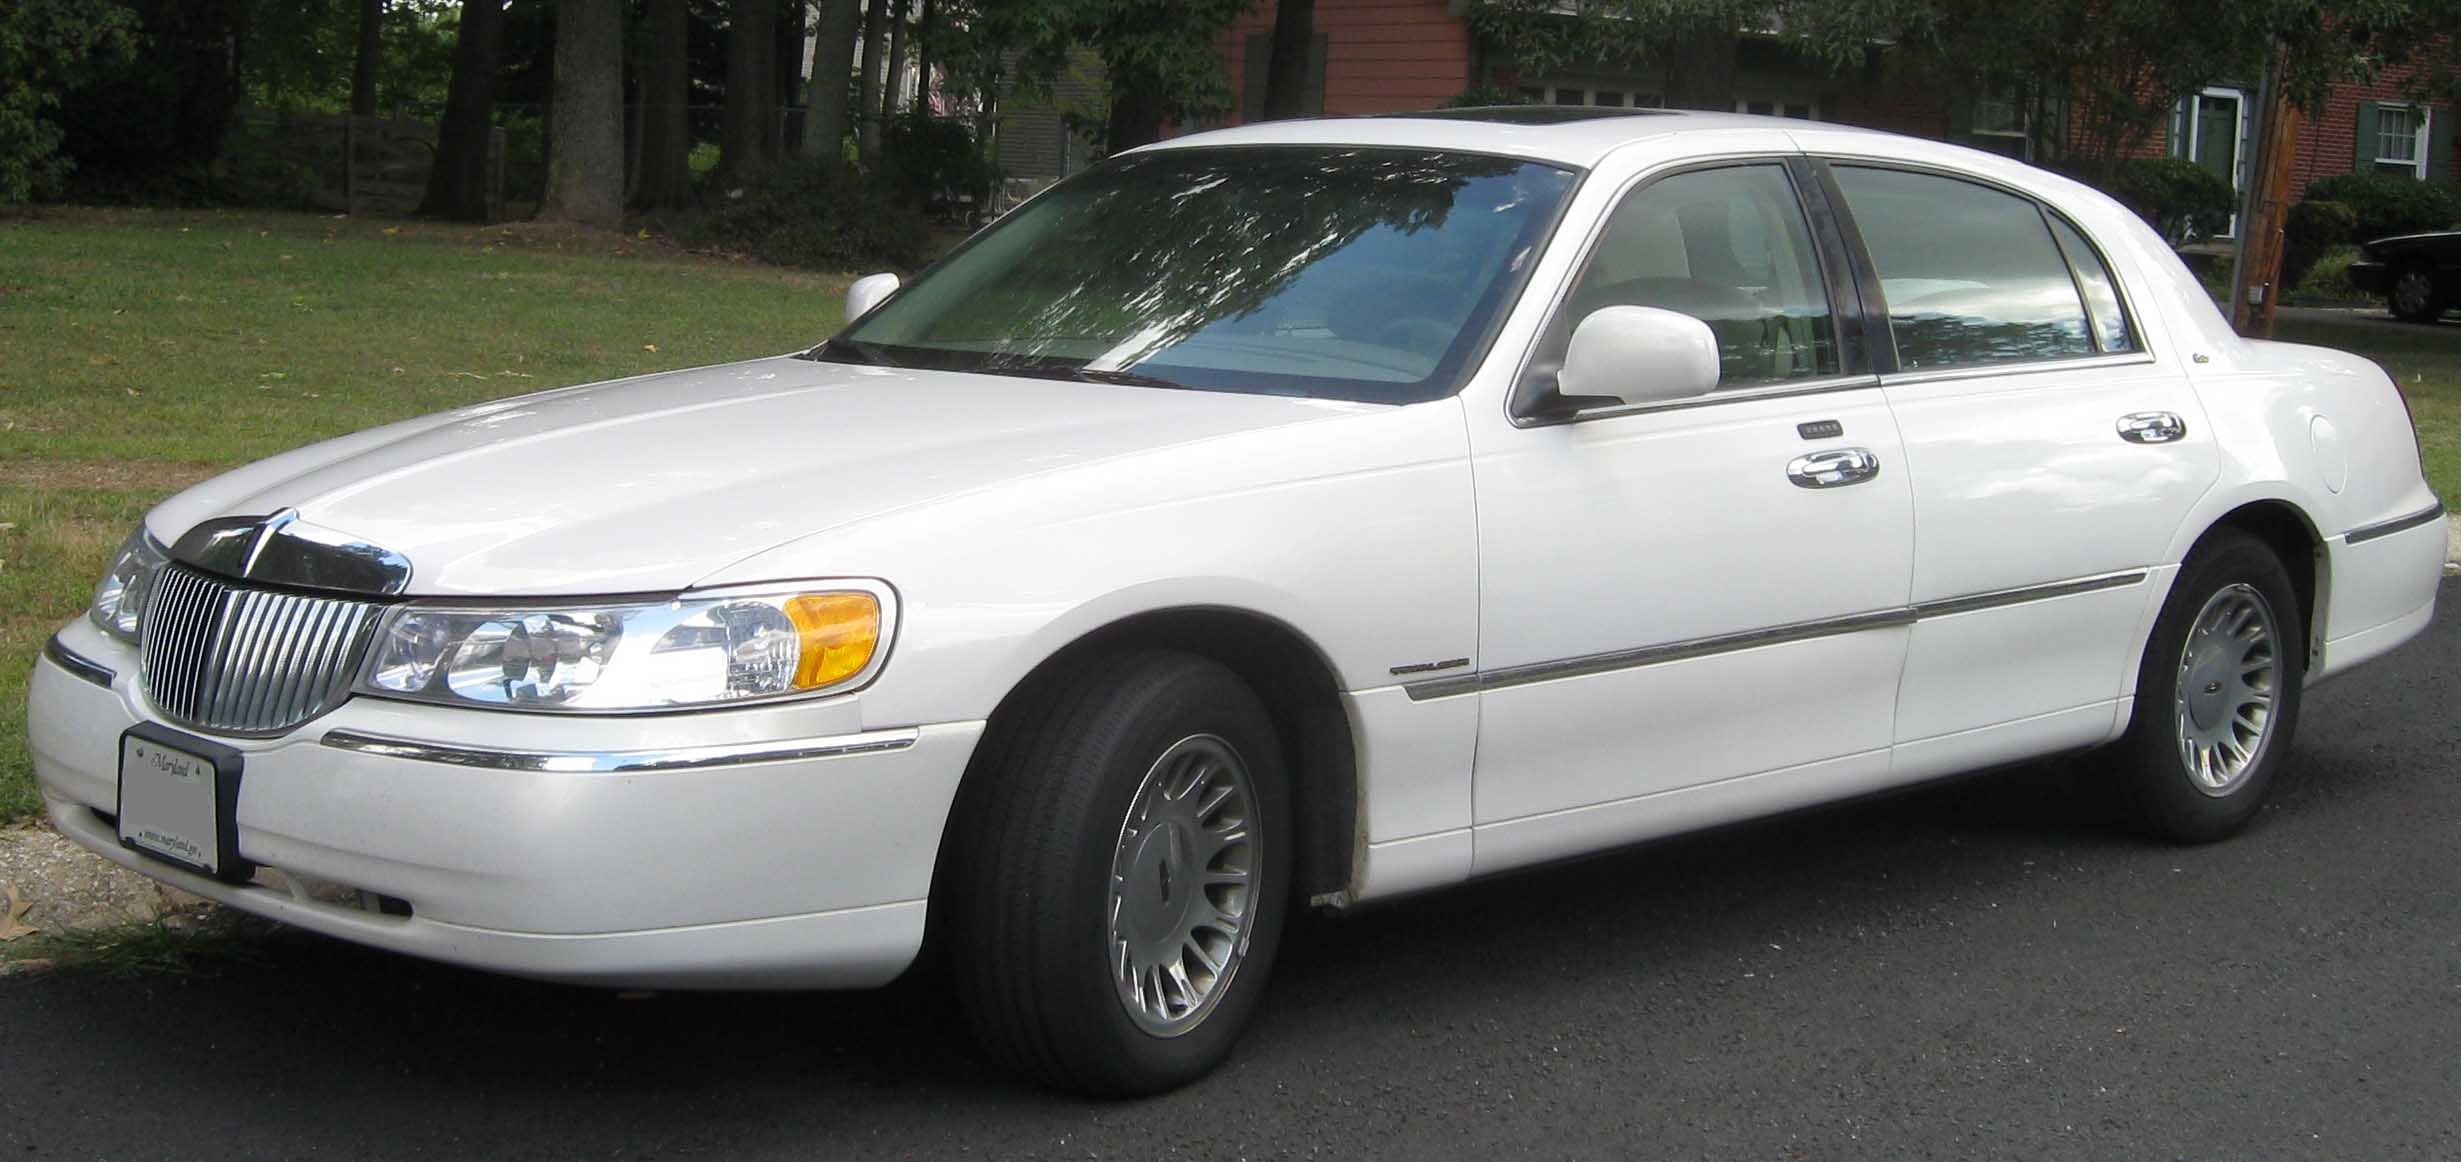 2001 Lincoln Town Car Image 10